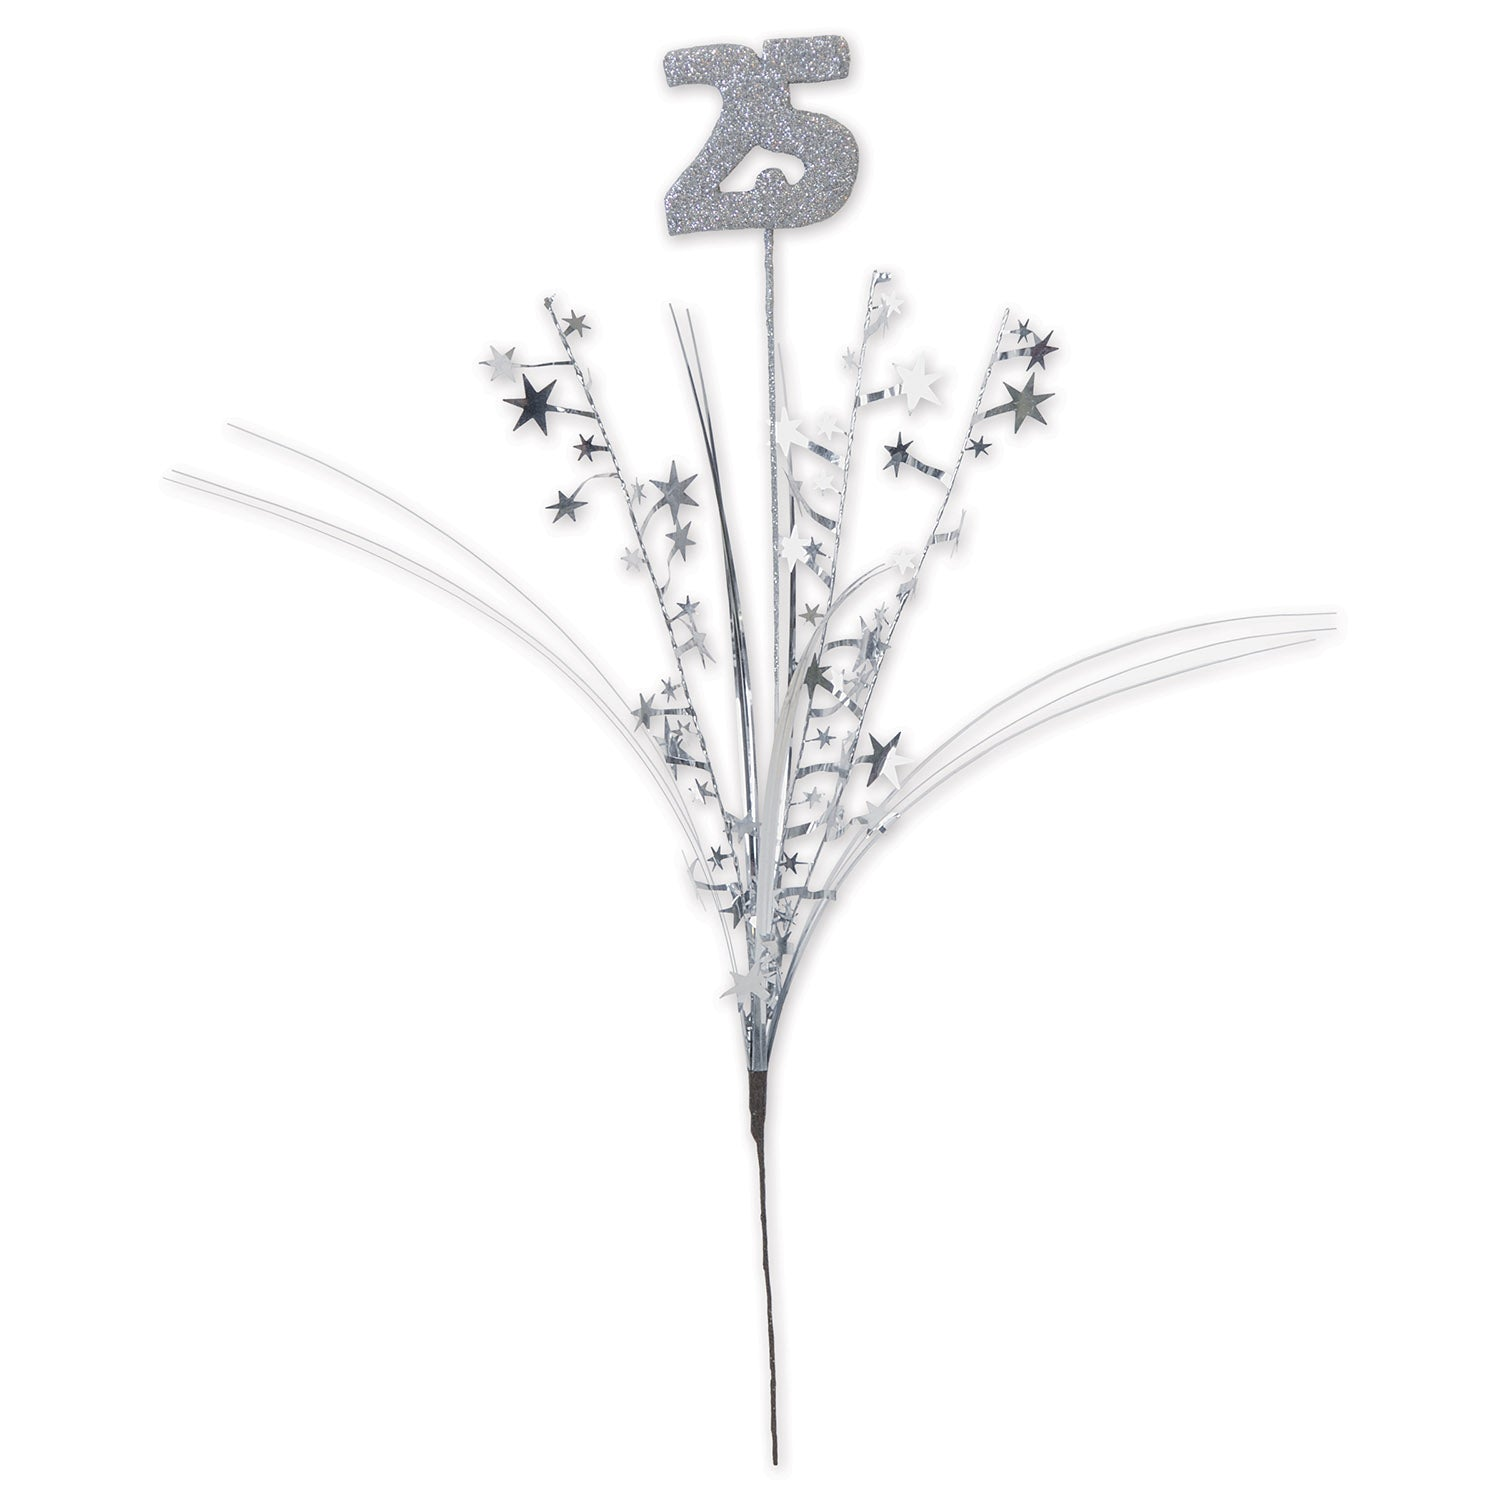 Glittered 25 Metallic Star Spray by Beistle - Anniversary Theme Decorations